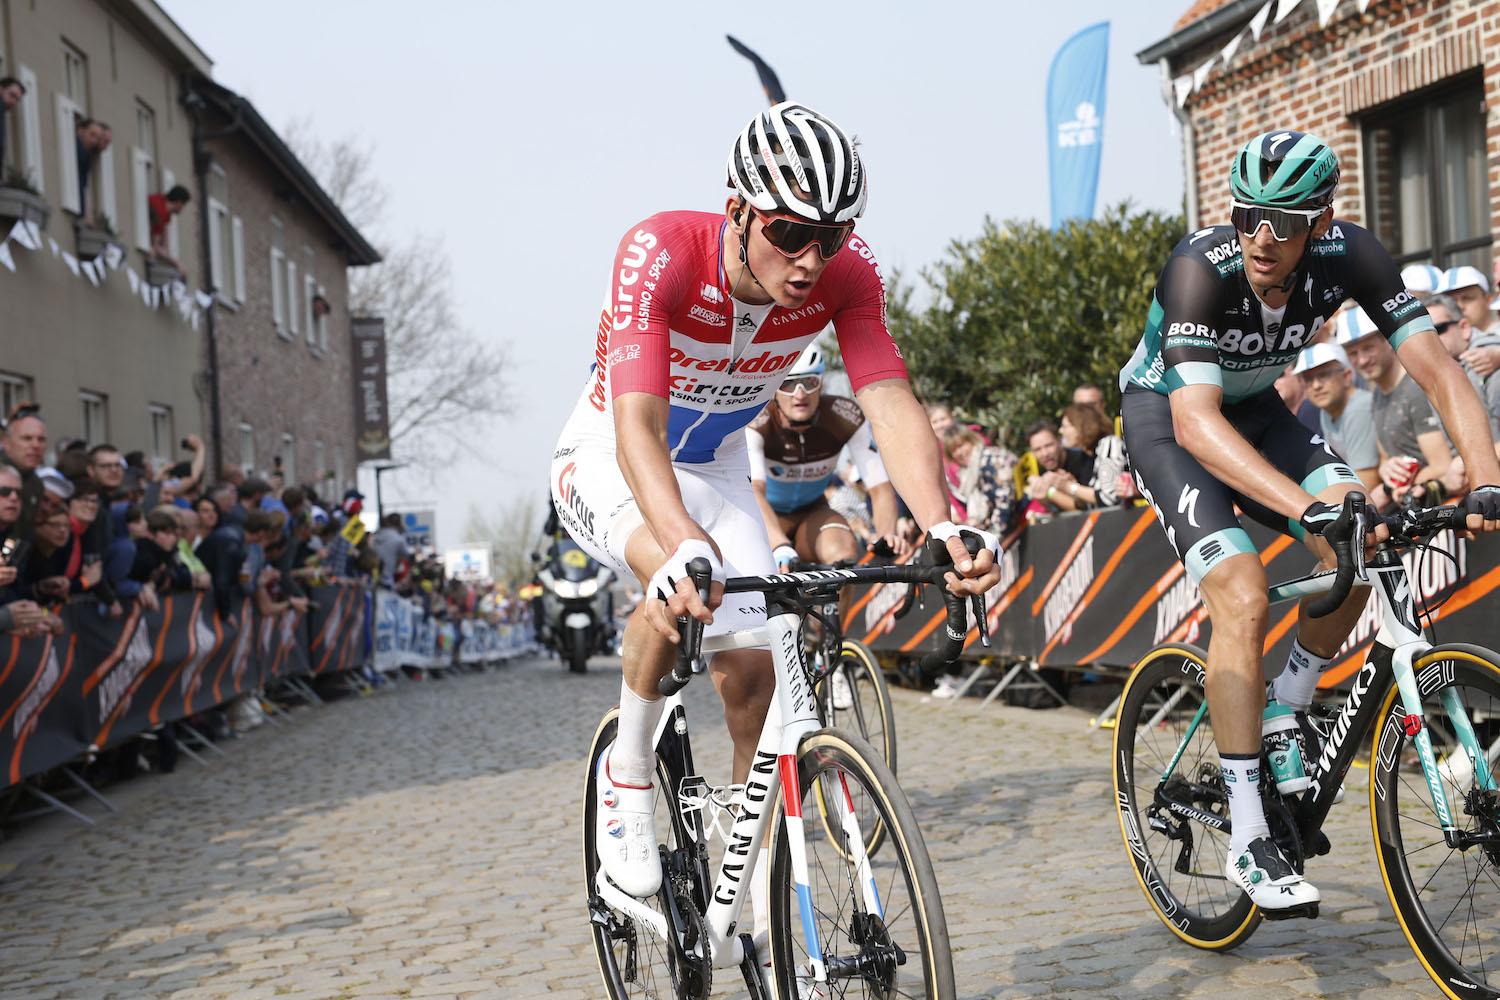 'I thought I'd already lost the race': Mathieu van der Poel impresses in Flanders after fighting back from crash